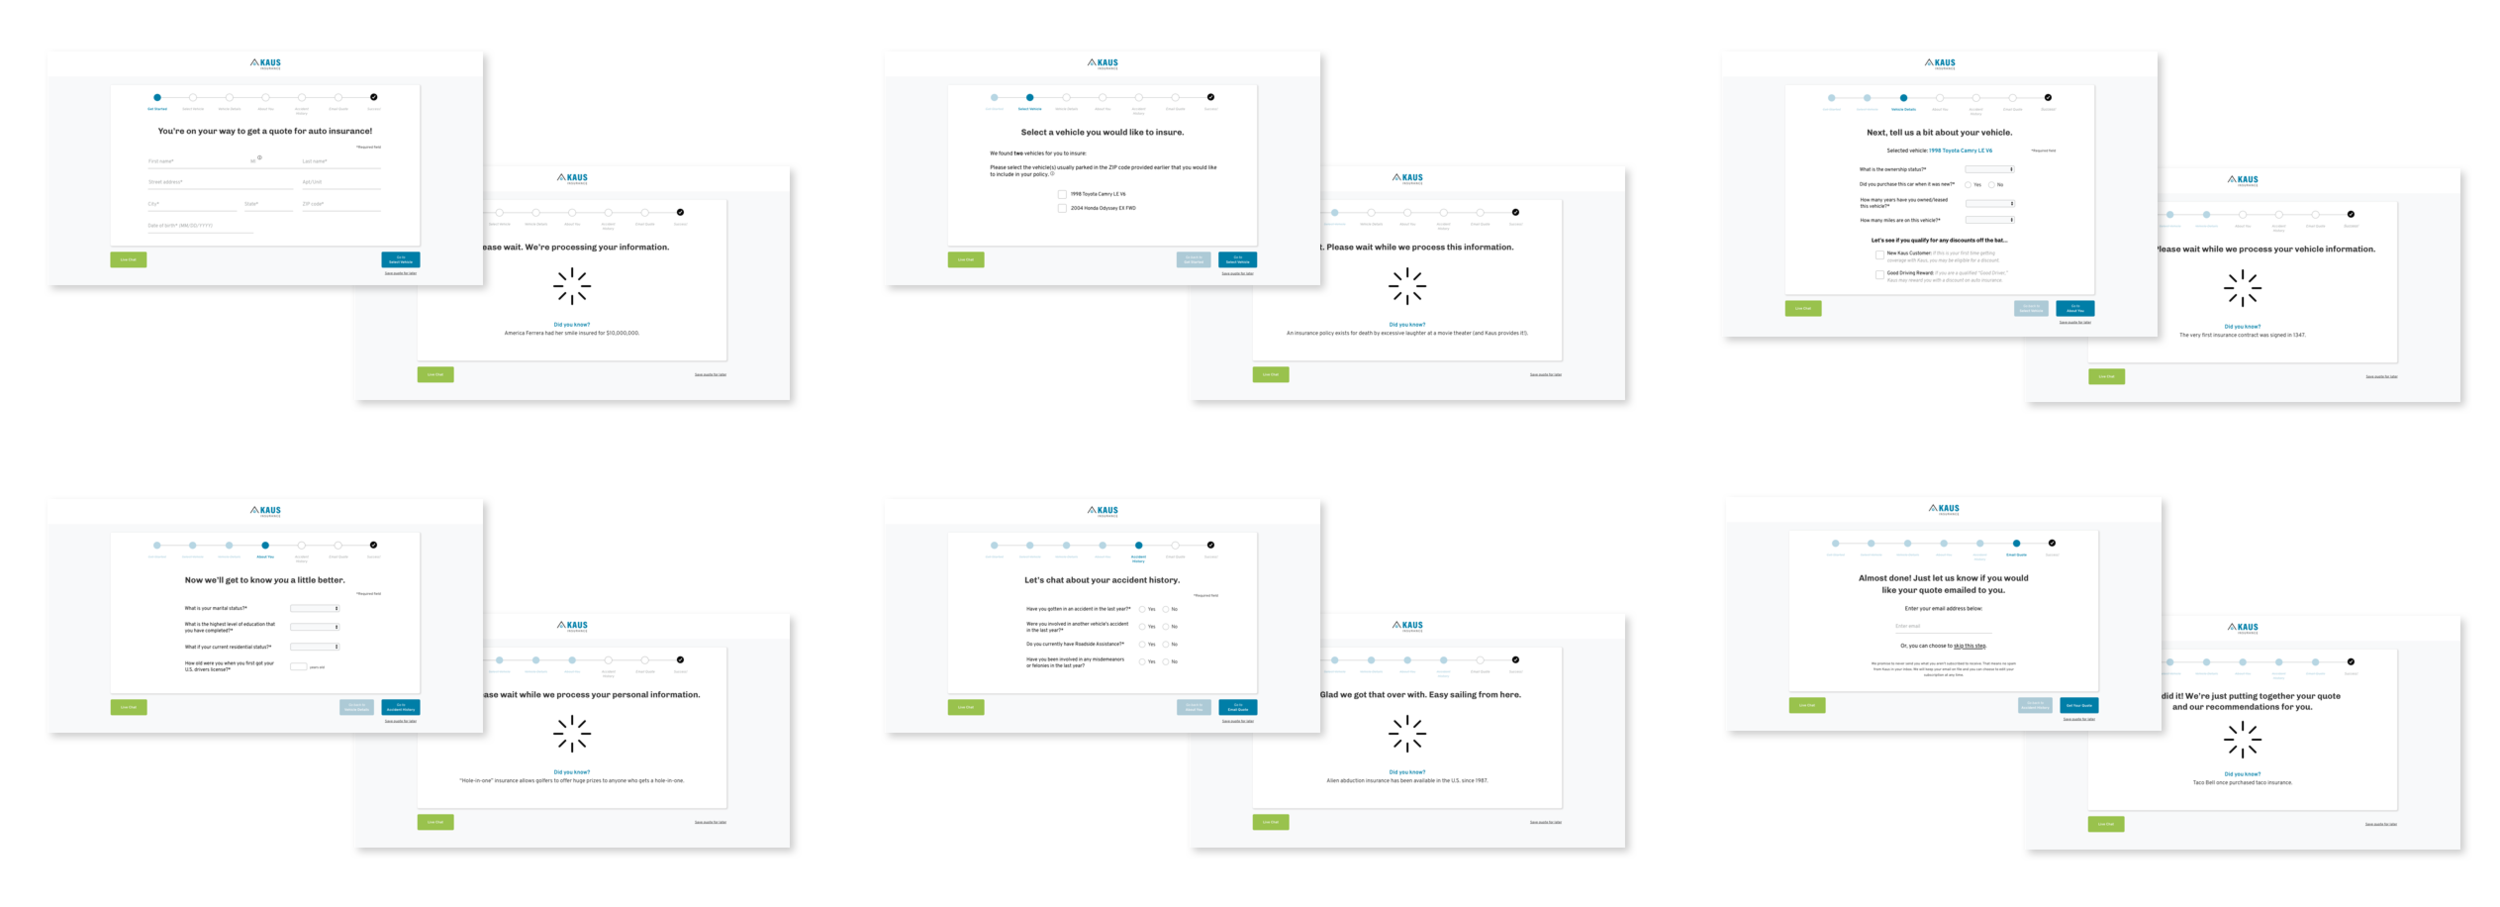 Final UI designs for the quote form, used during usability testing.